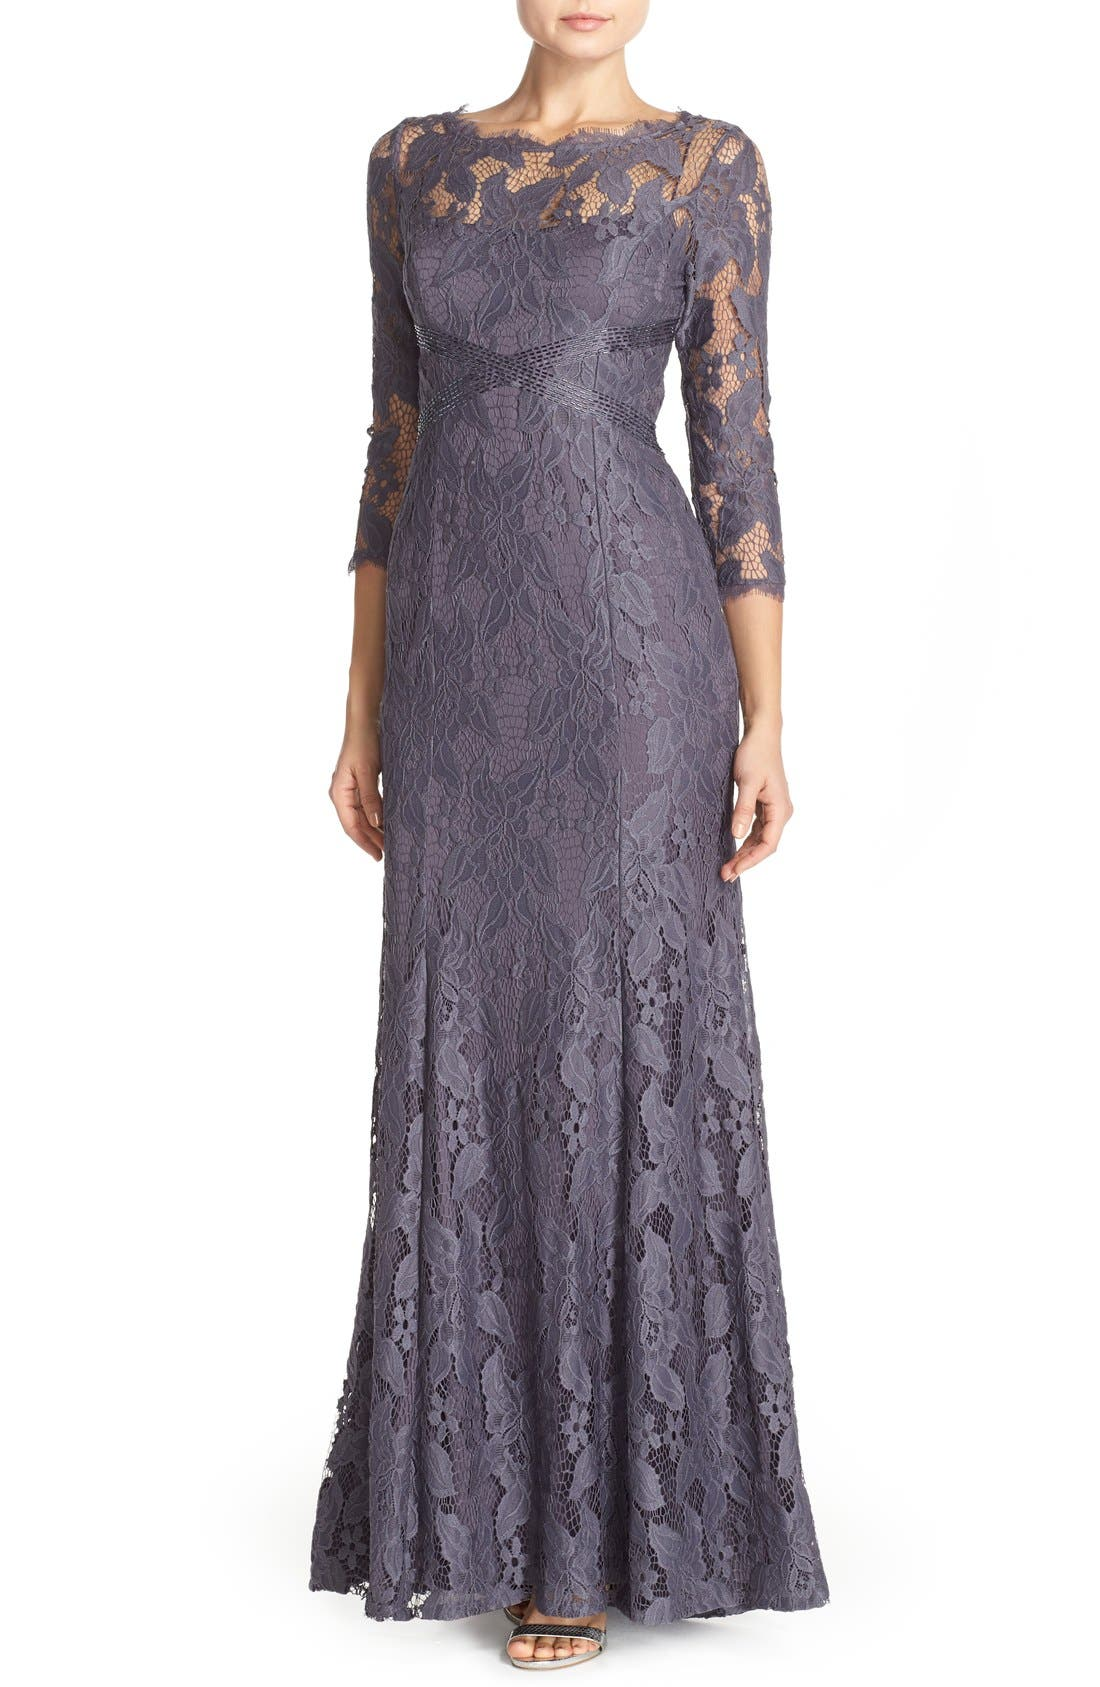 Alternate Image 1 Selected - Adrianna Papell Illusion Yoke Lace Gown